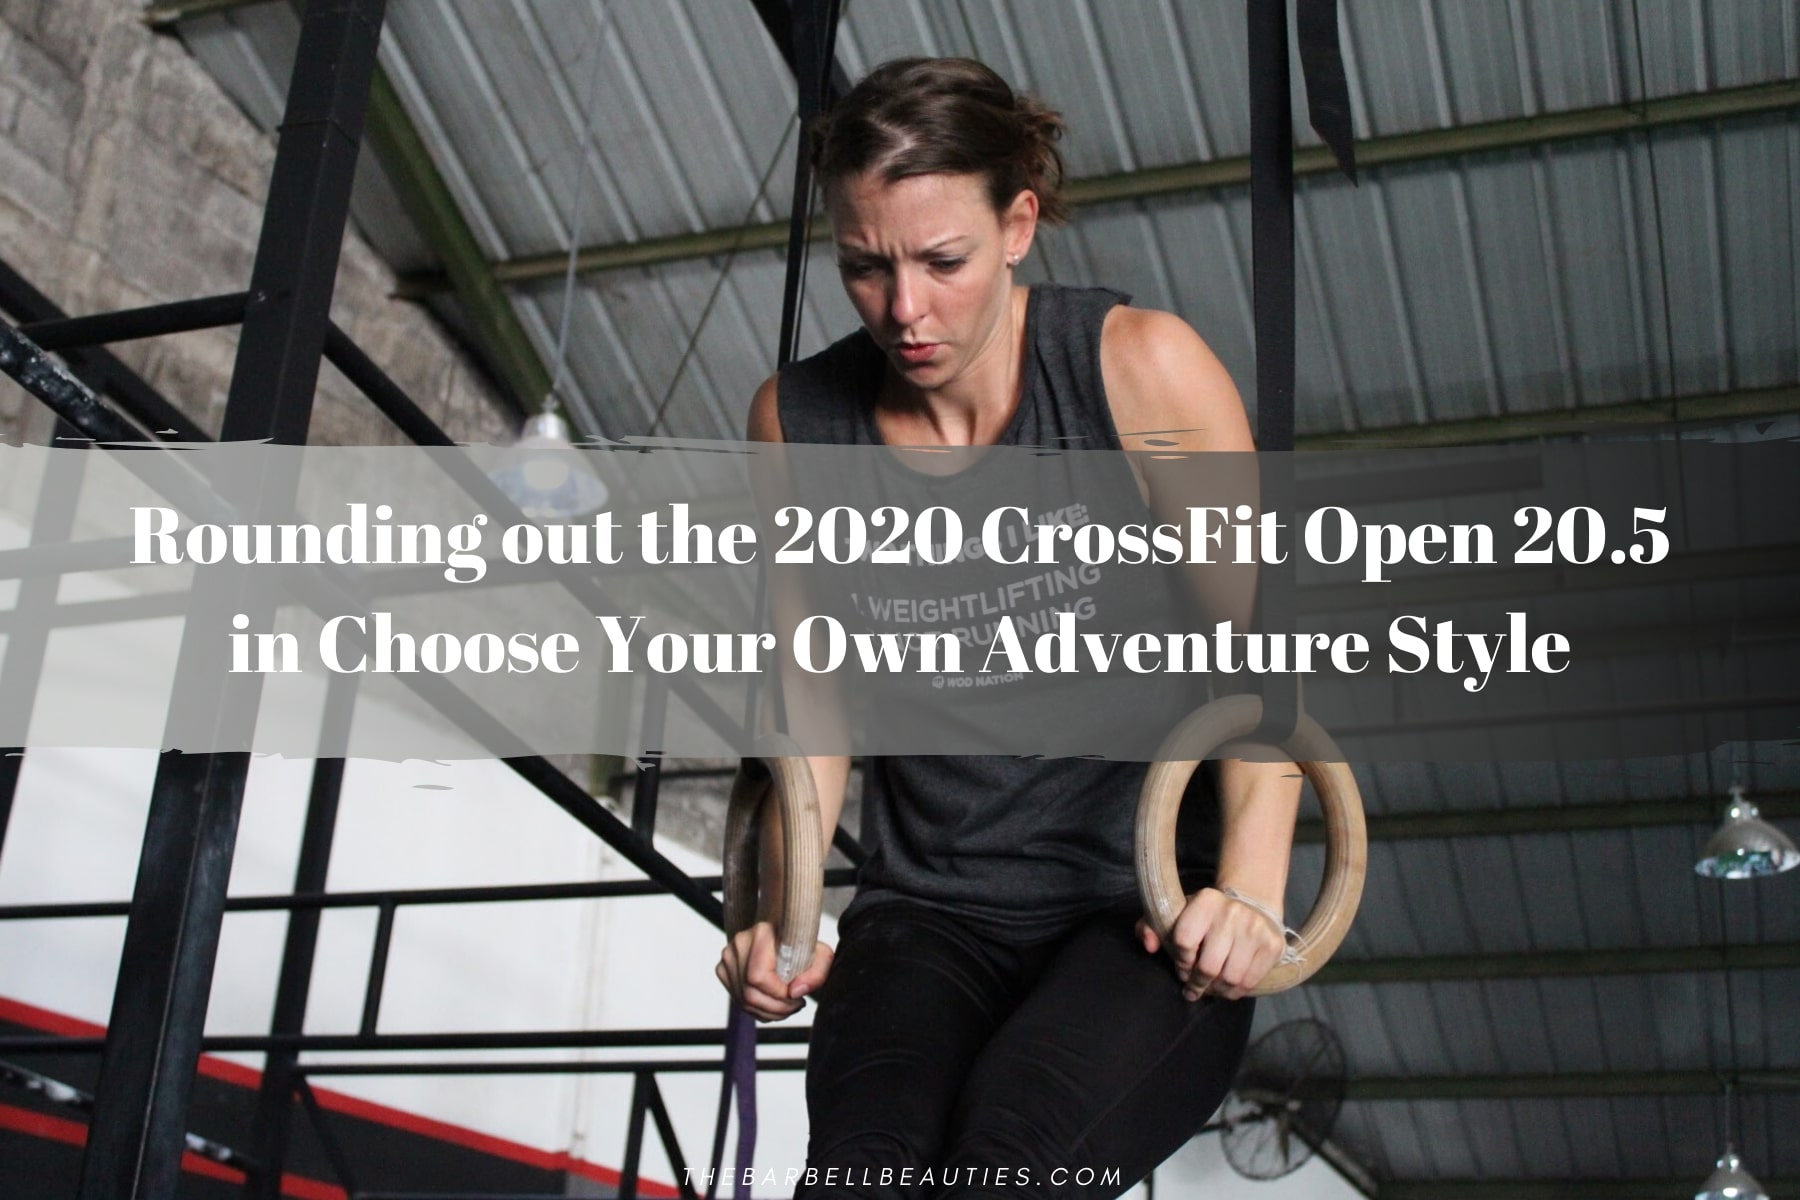 The CrossFit Open is Over! What did you Learn?